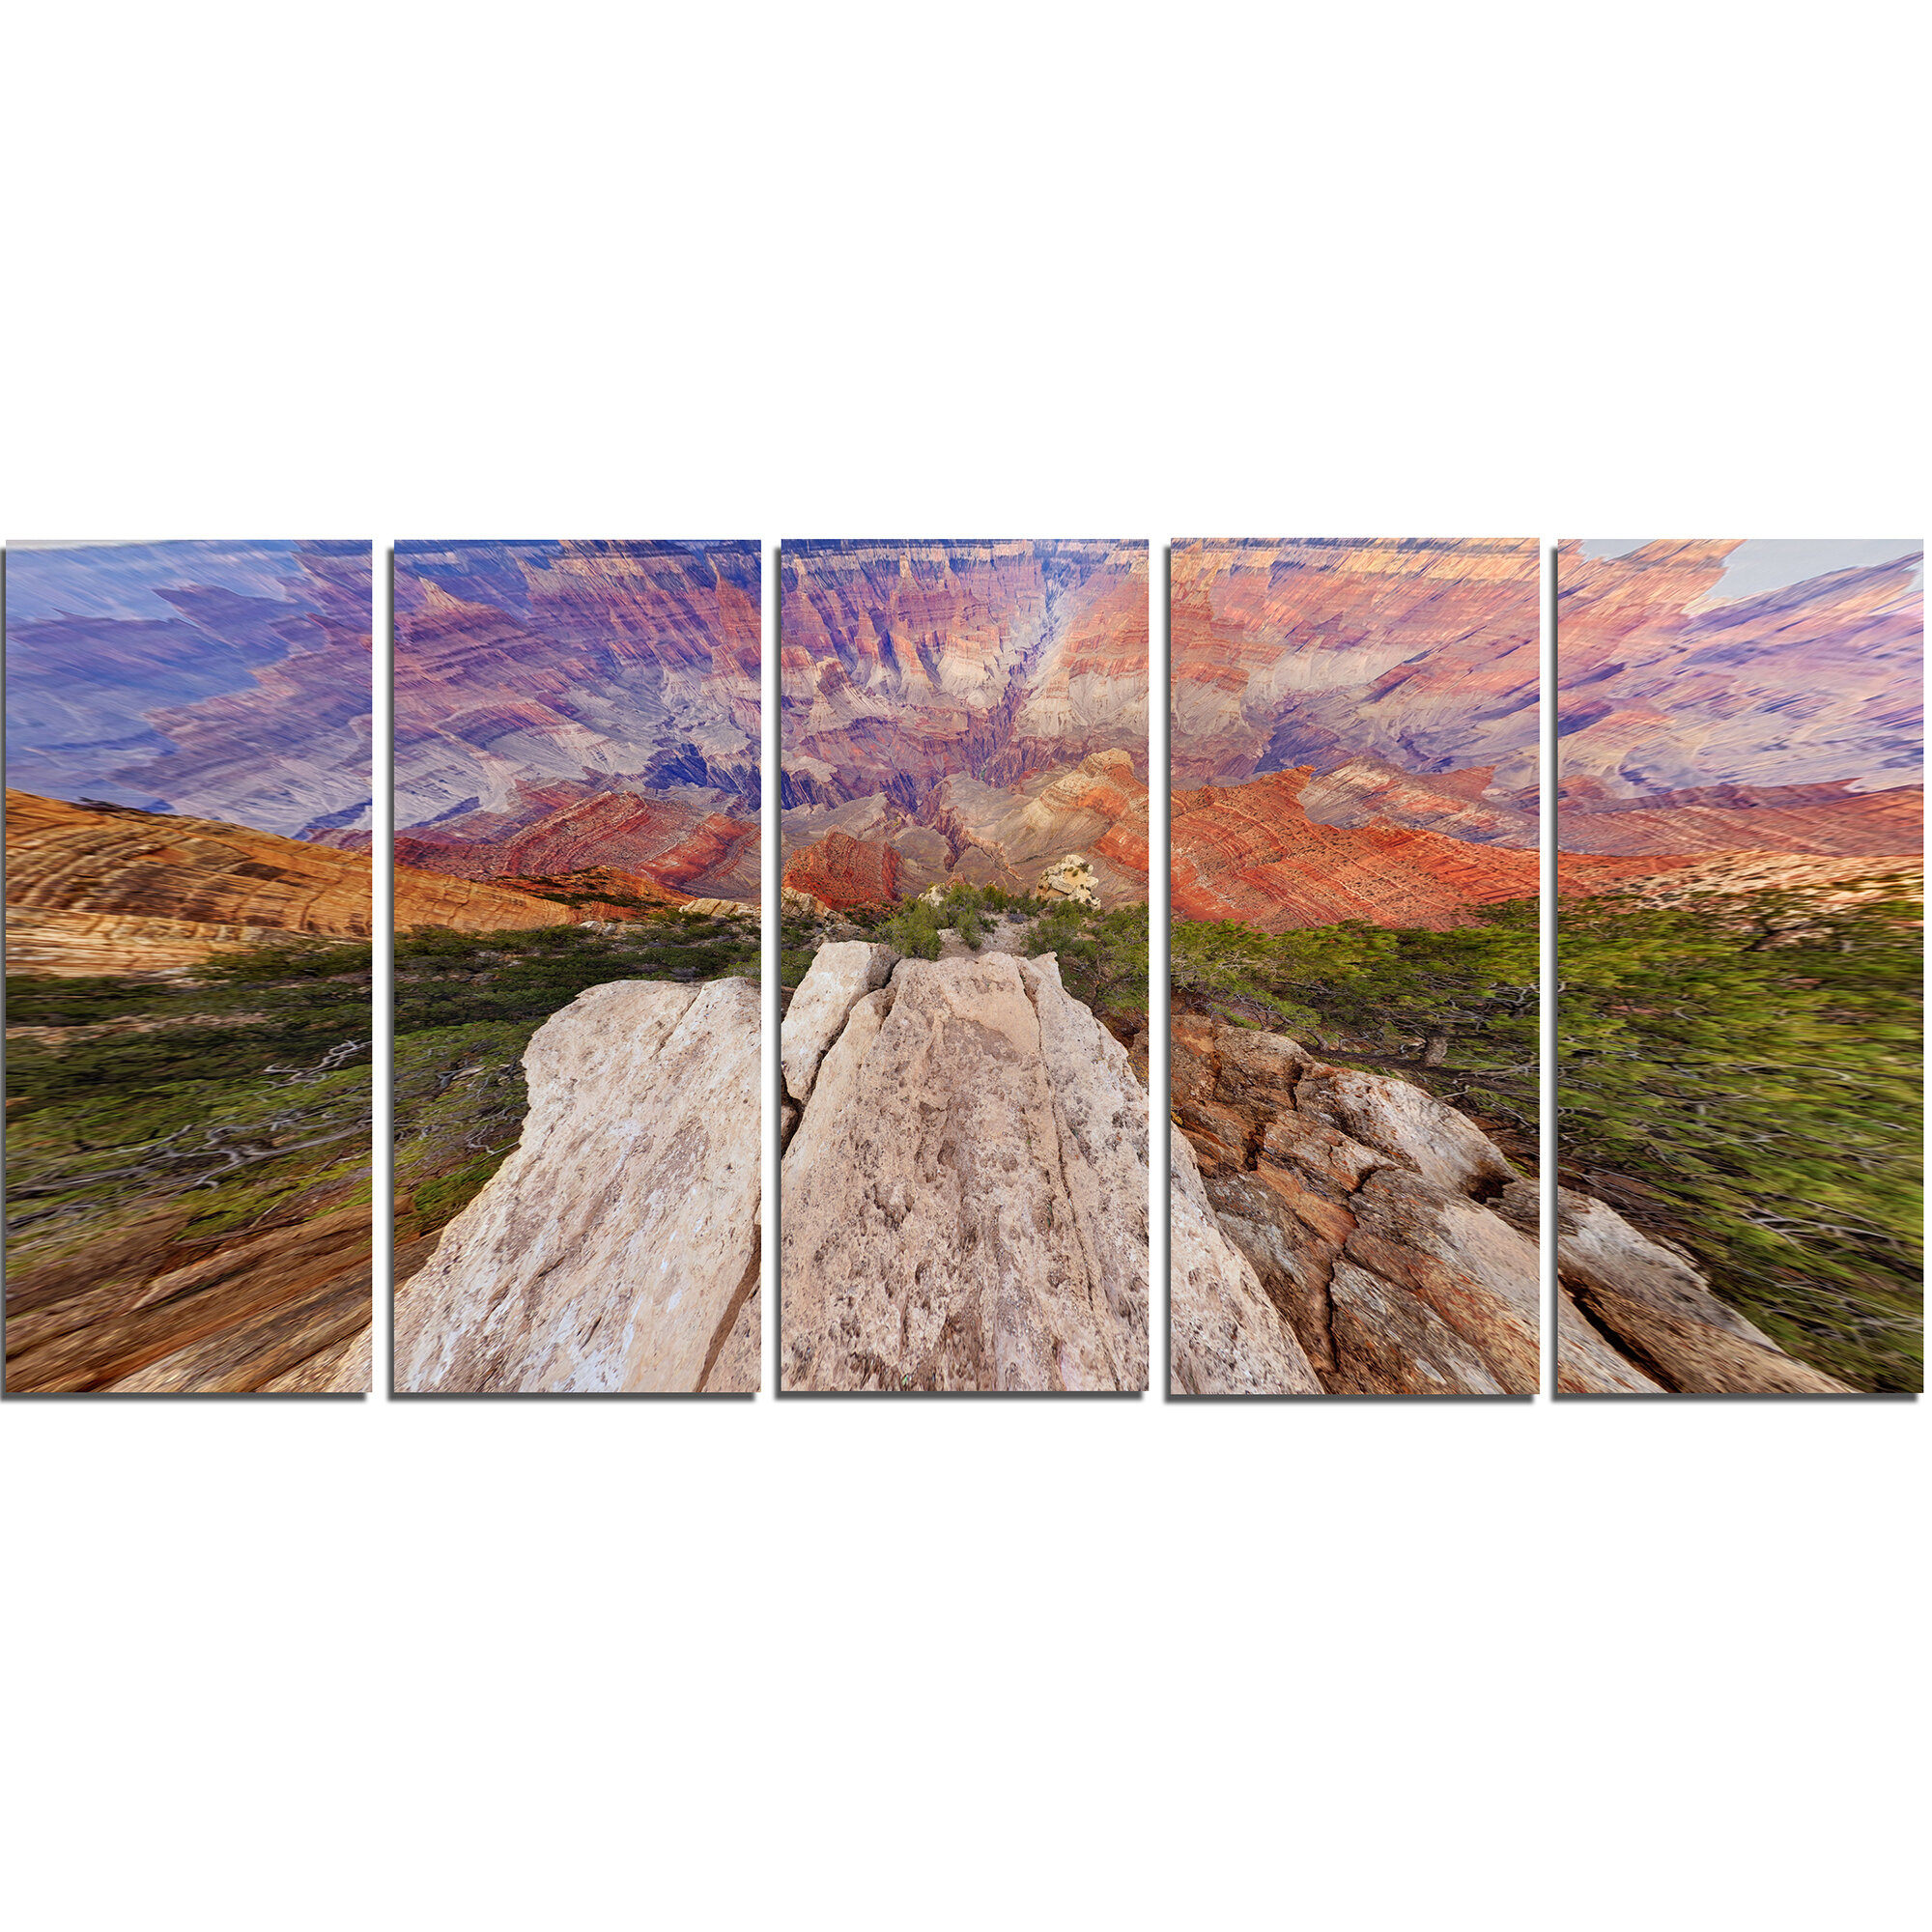 Designart Grand Canyon View From Above 5 Piece Wall Art On Wrapped Canvas Set Wayfair